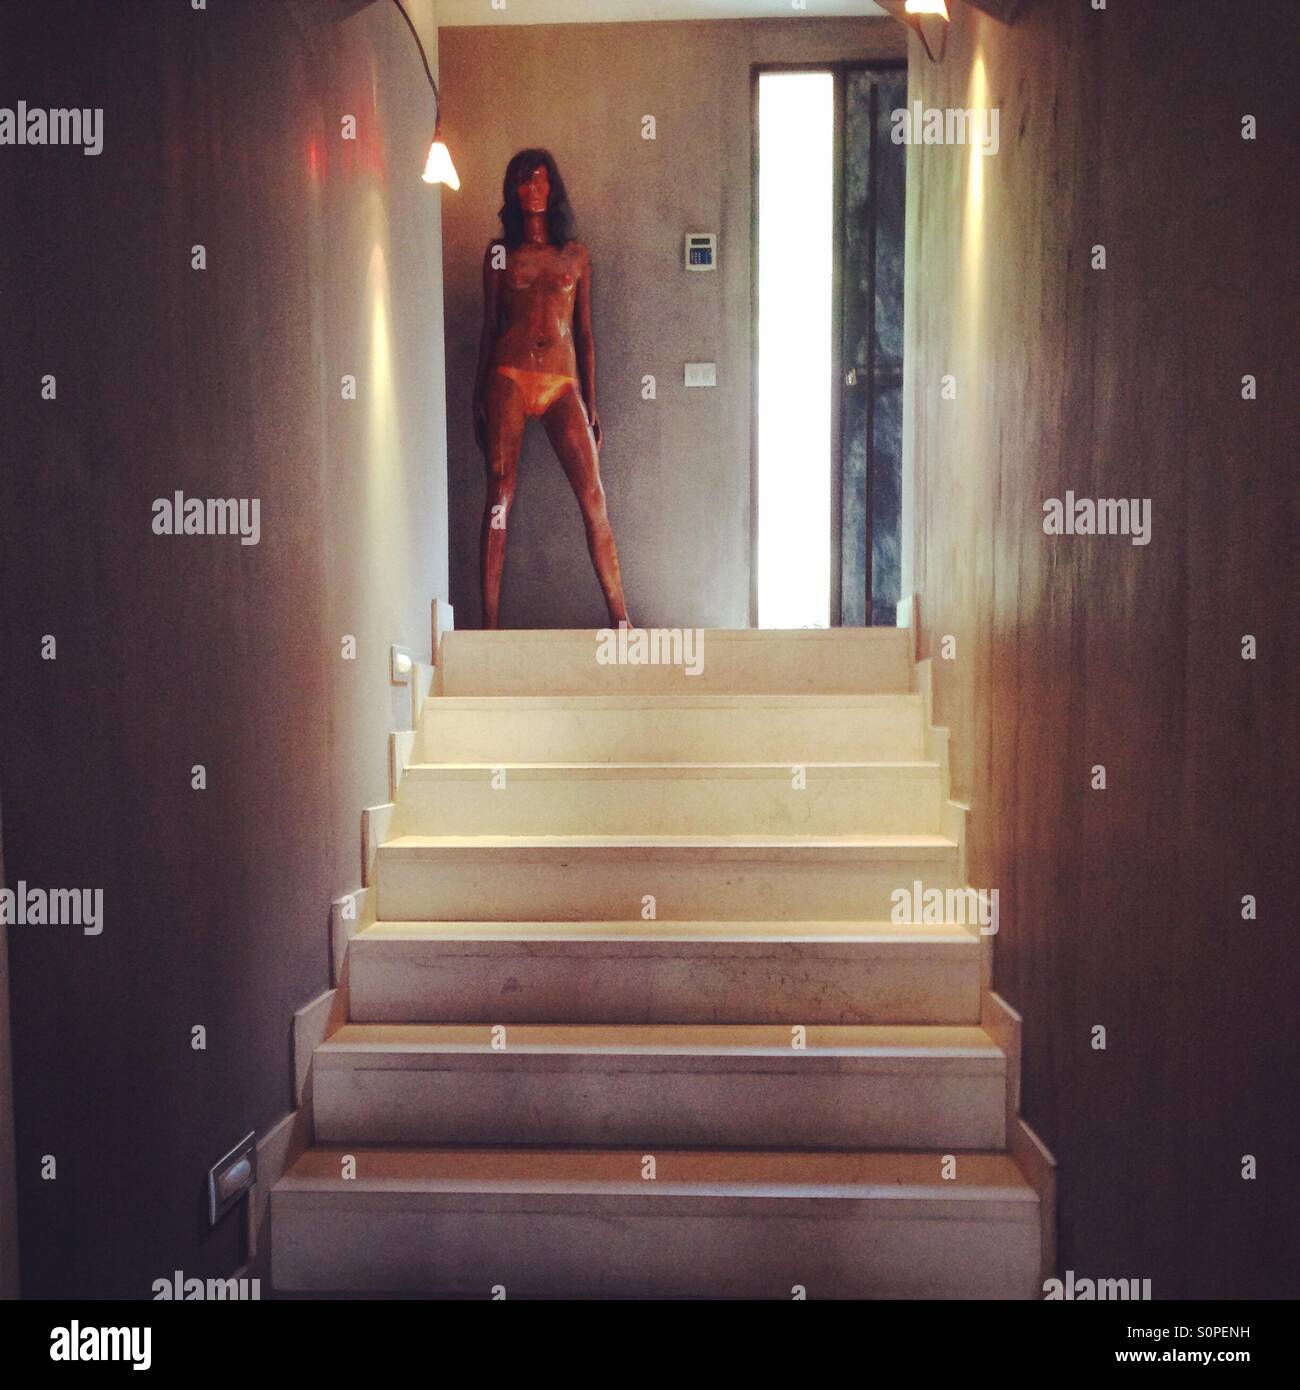 Hotel stairs with model sculpture - Stock Image